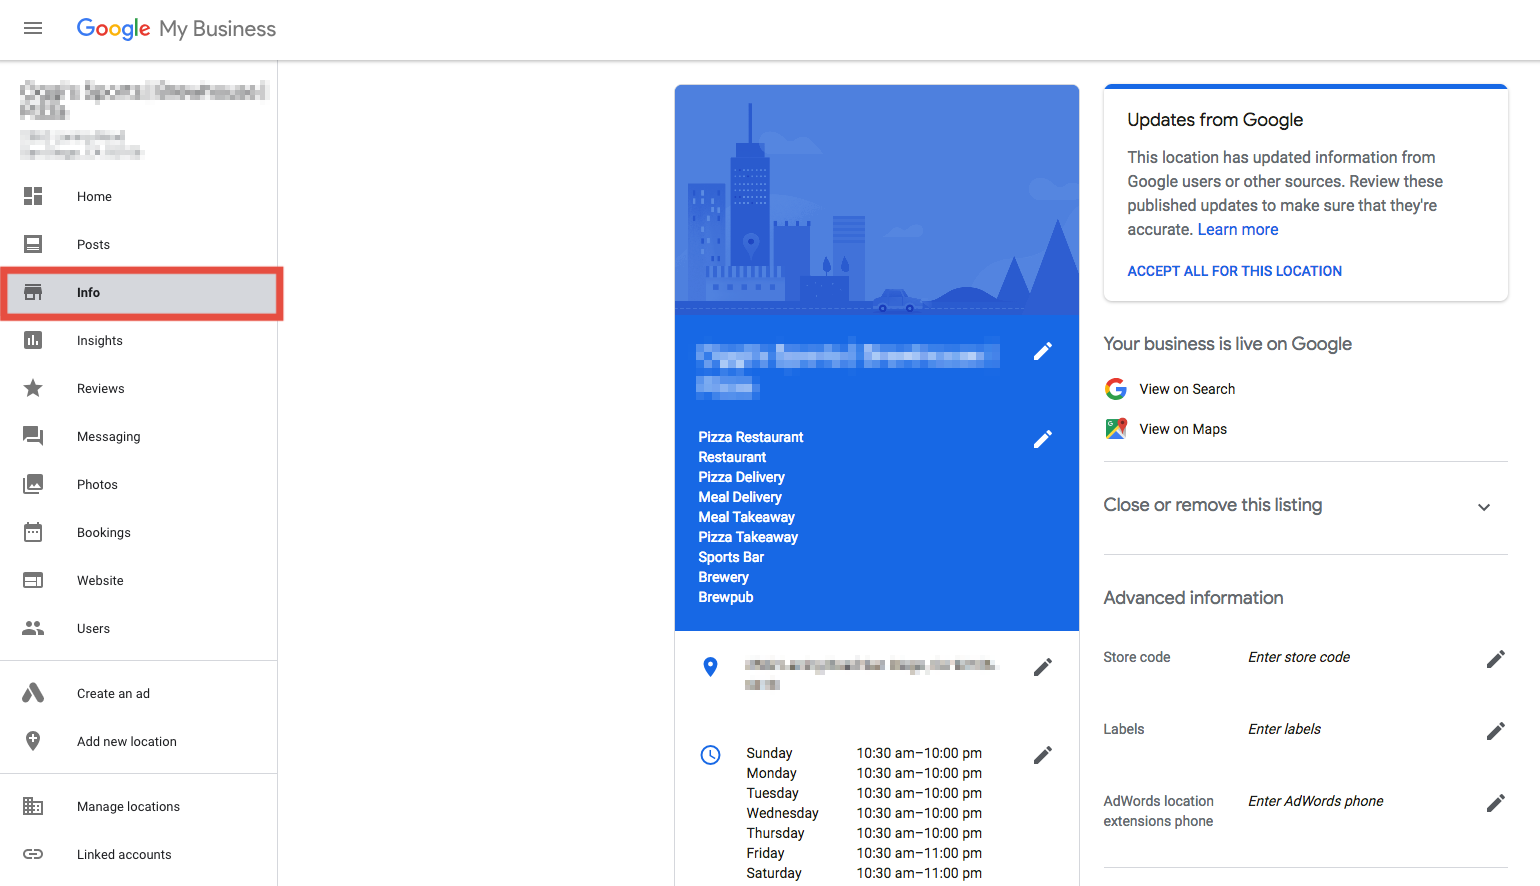 Info section of Google My Business Dashboard